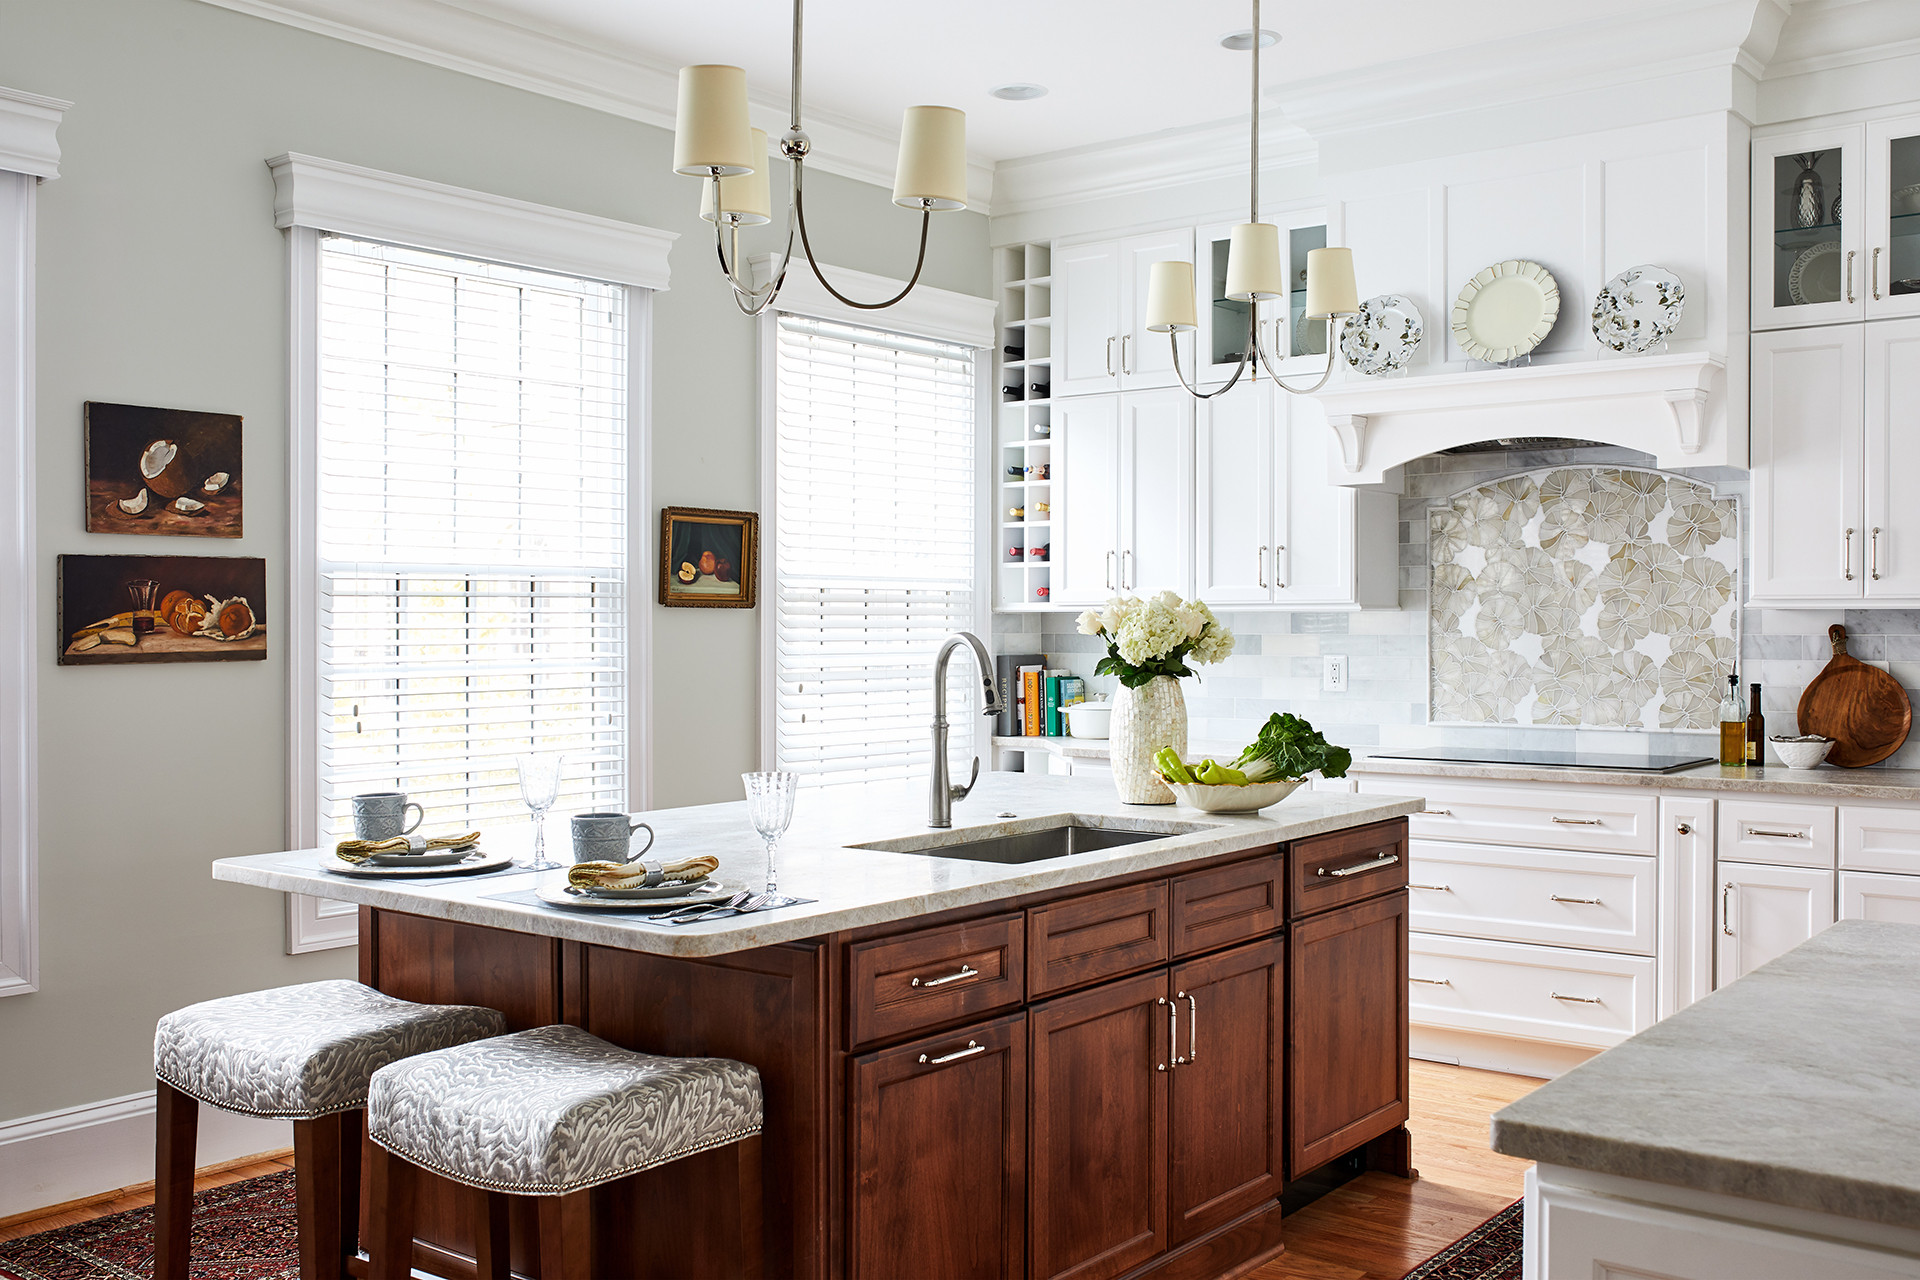 75 Beautiful Kitchen Pictures Ideas October 2020 Houzz